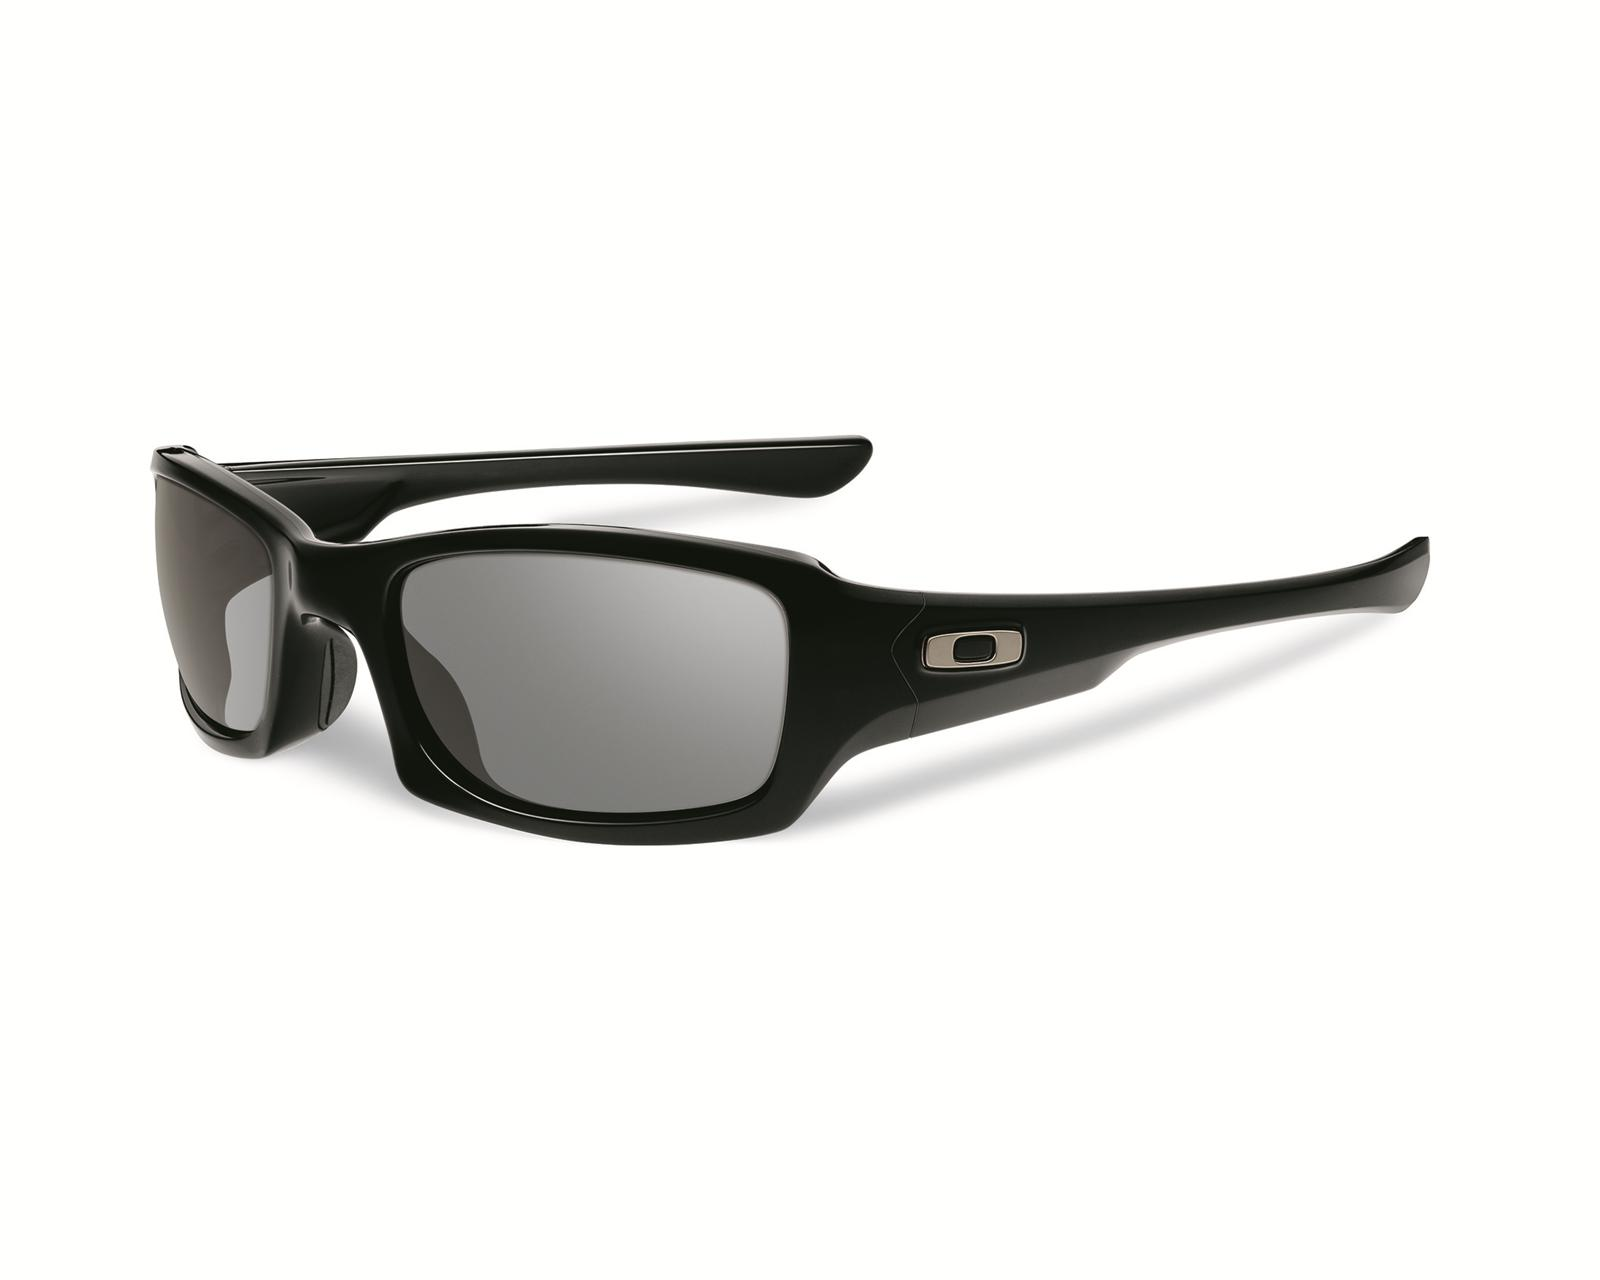 af48bc61123 Oakley Fives Squared Sunglasses OO9238-04 - Free Shipping on Orders Over   99 at Summit Racing